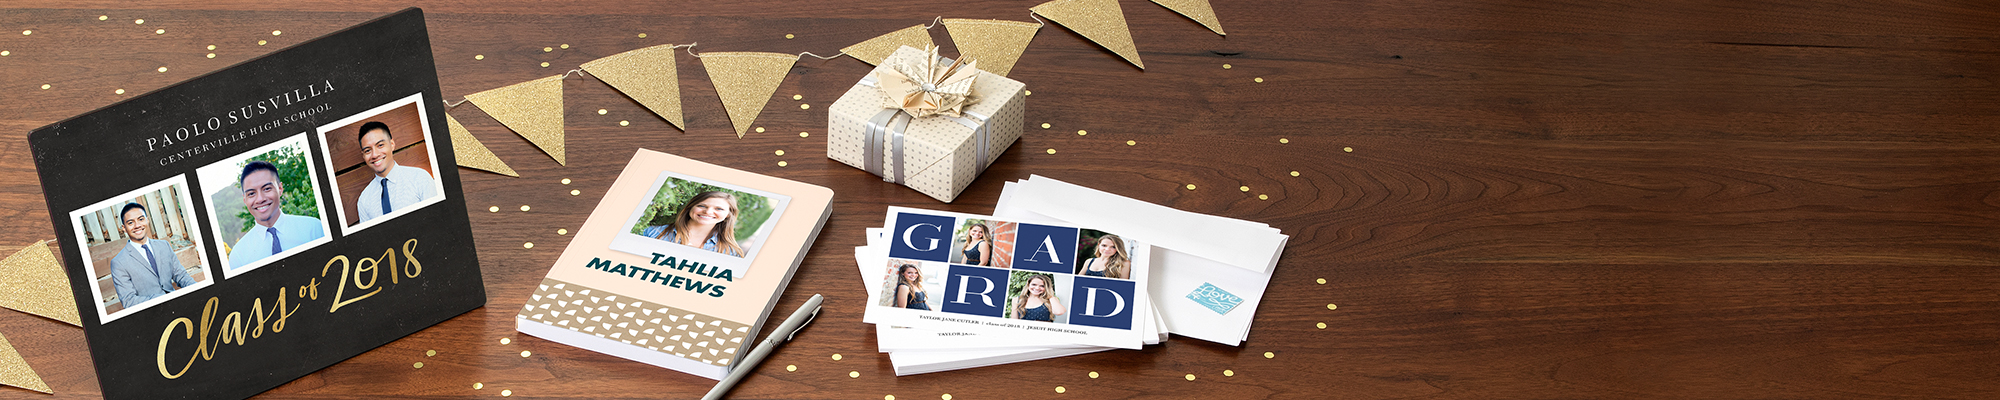 Graduation Gifts Find the perfect gifts for your loved ones.